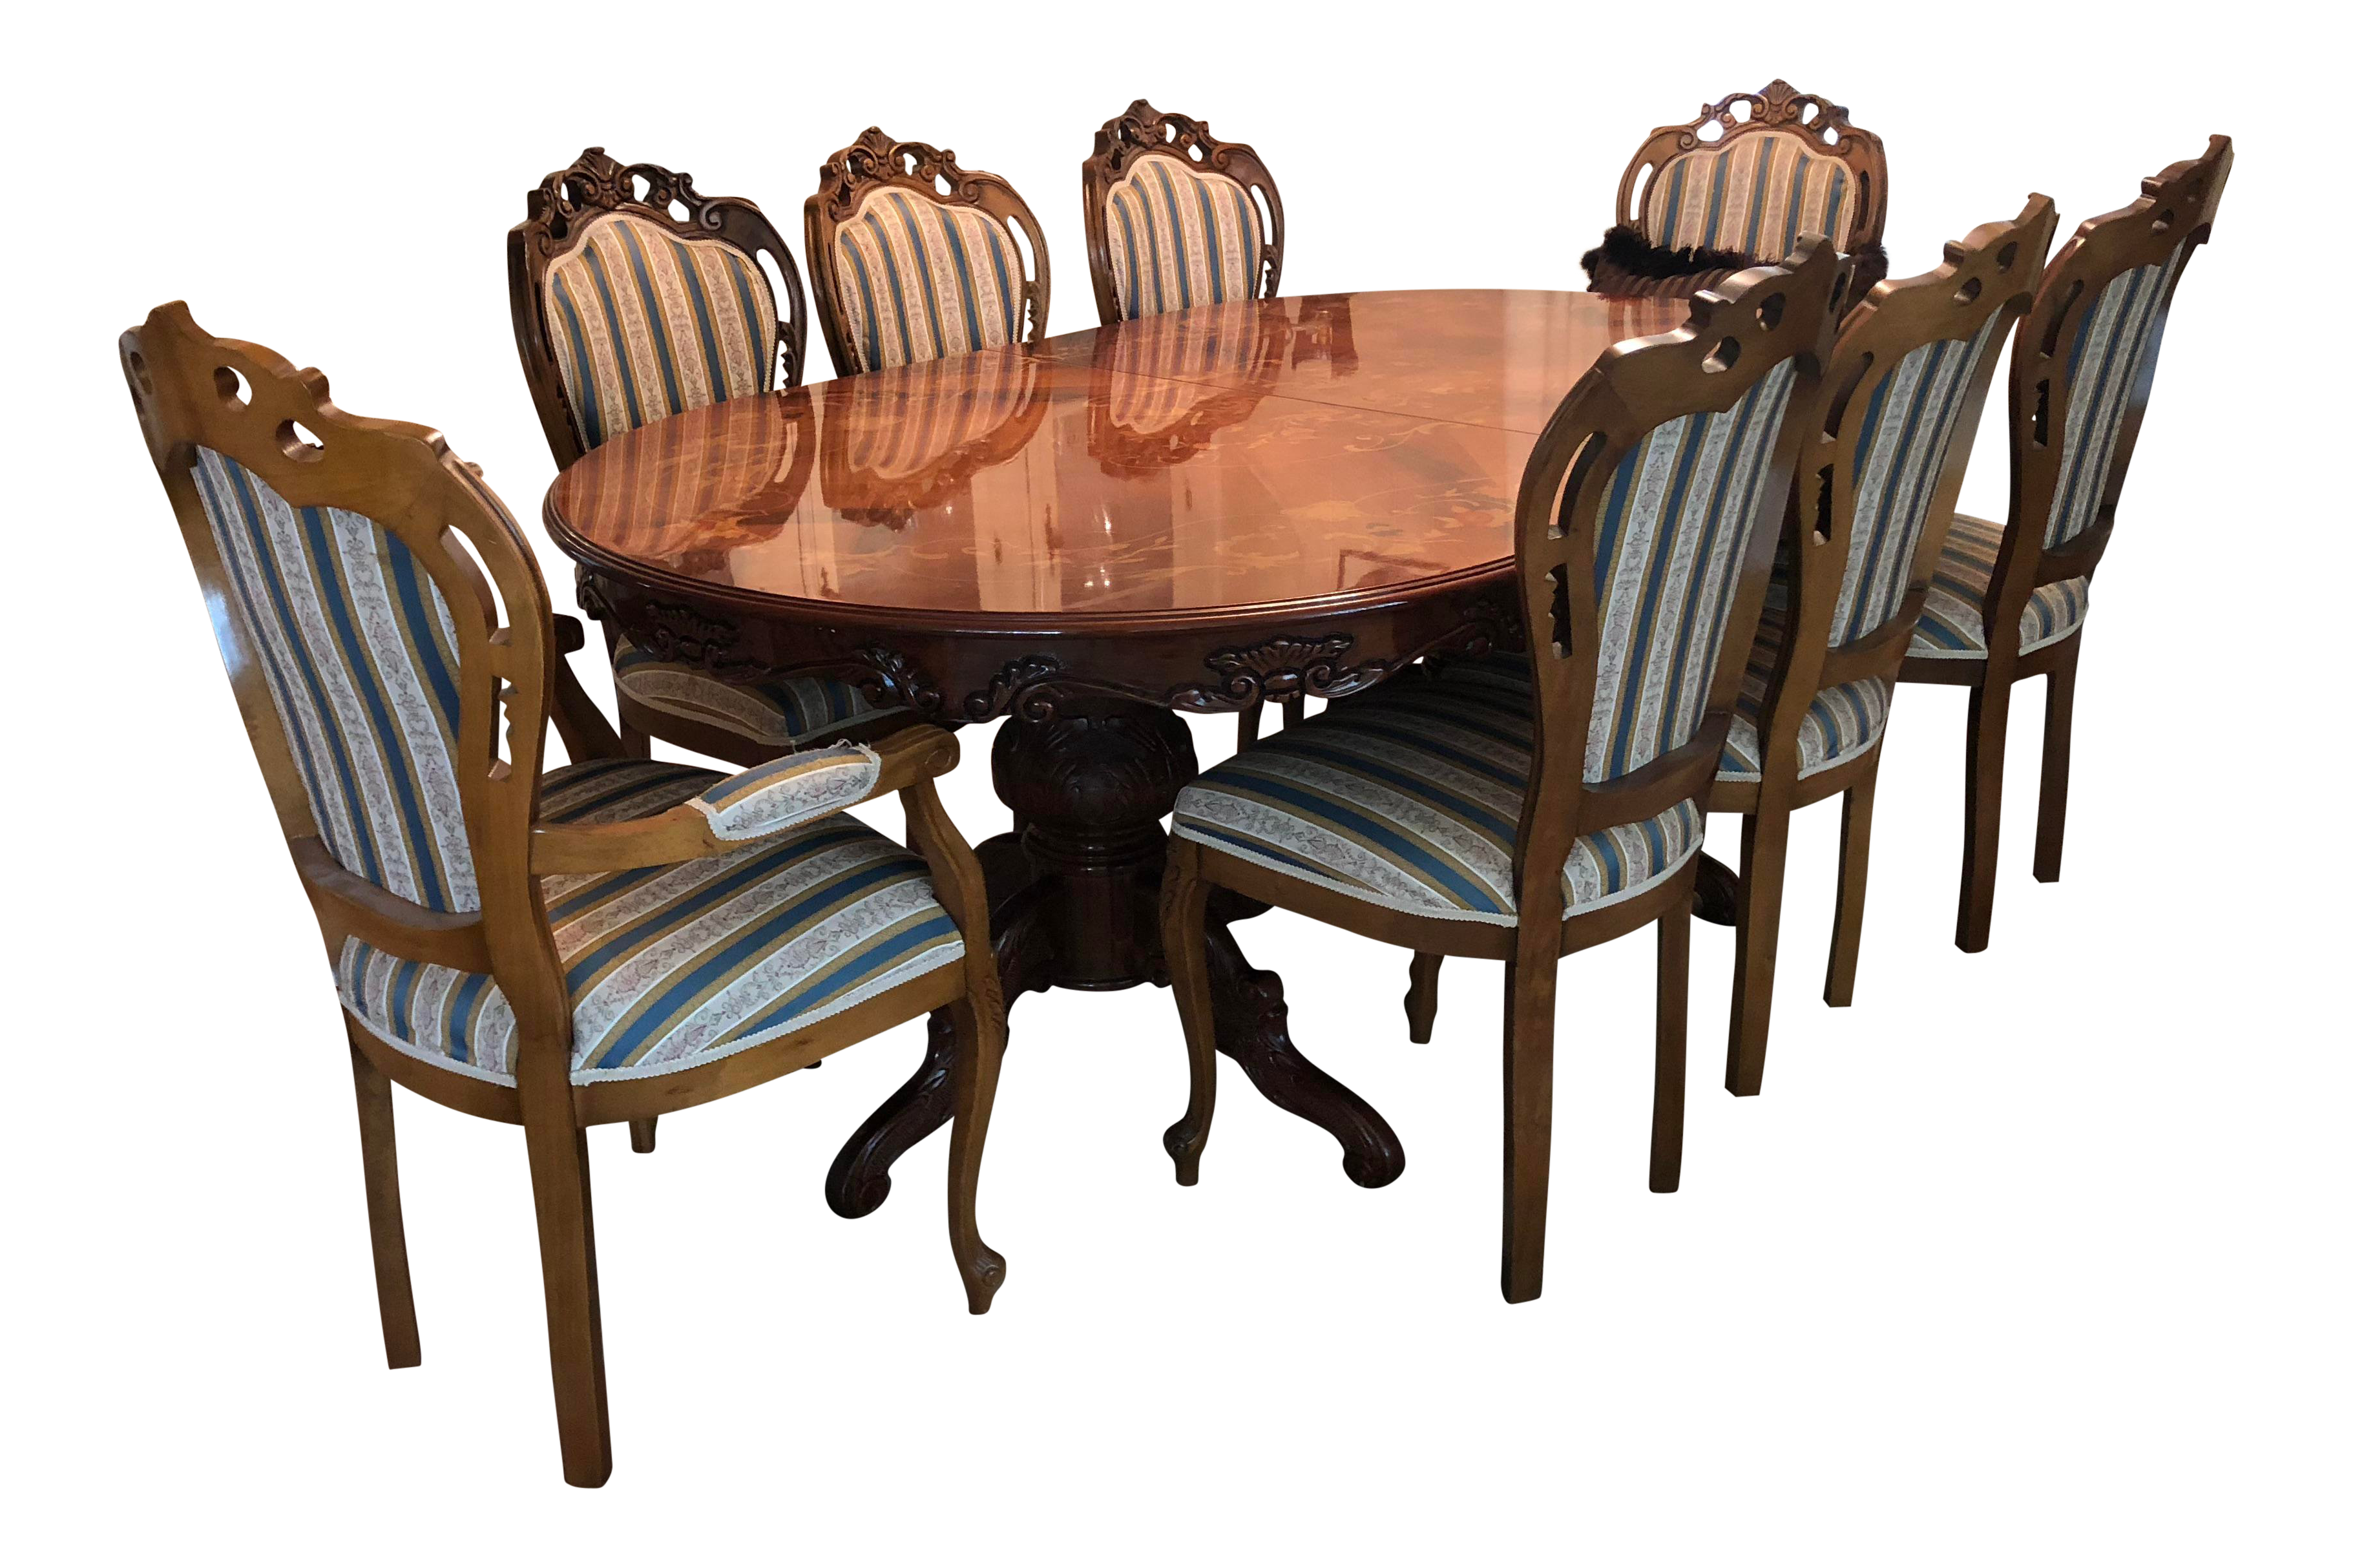 Golden Walnut Dining Room Set With Italian Hand Painted Design | Chairish